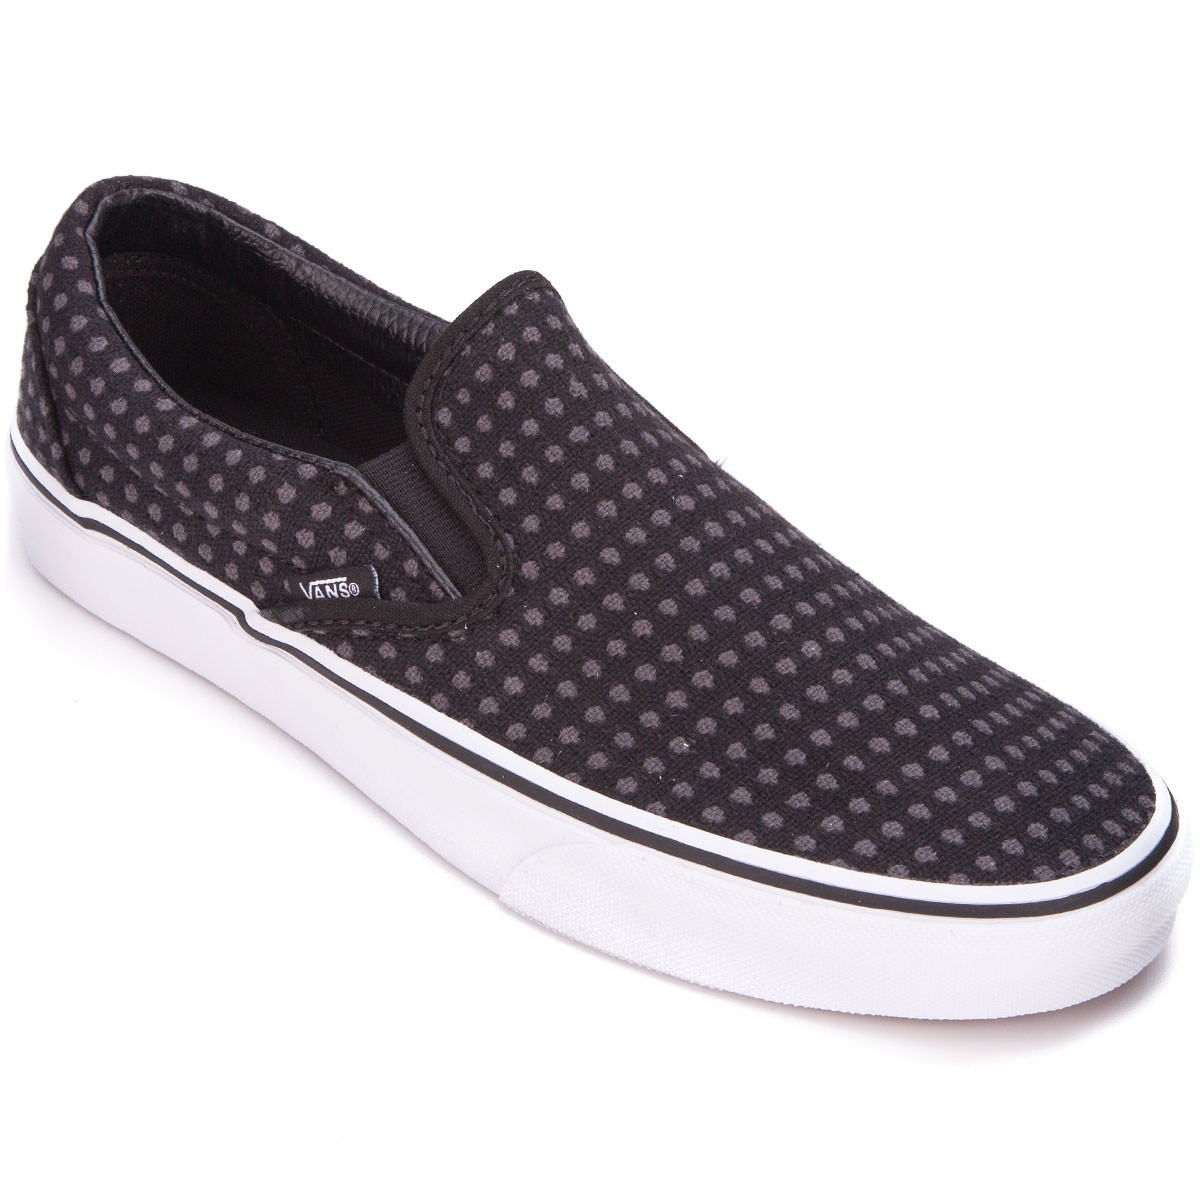 white vans slip ons womens shoes